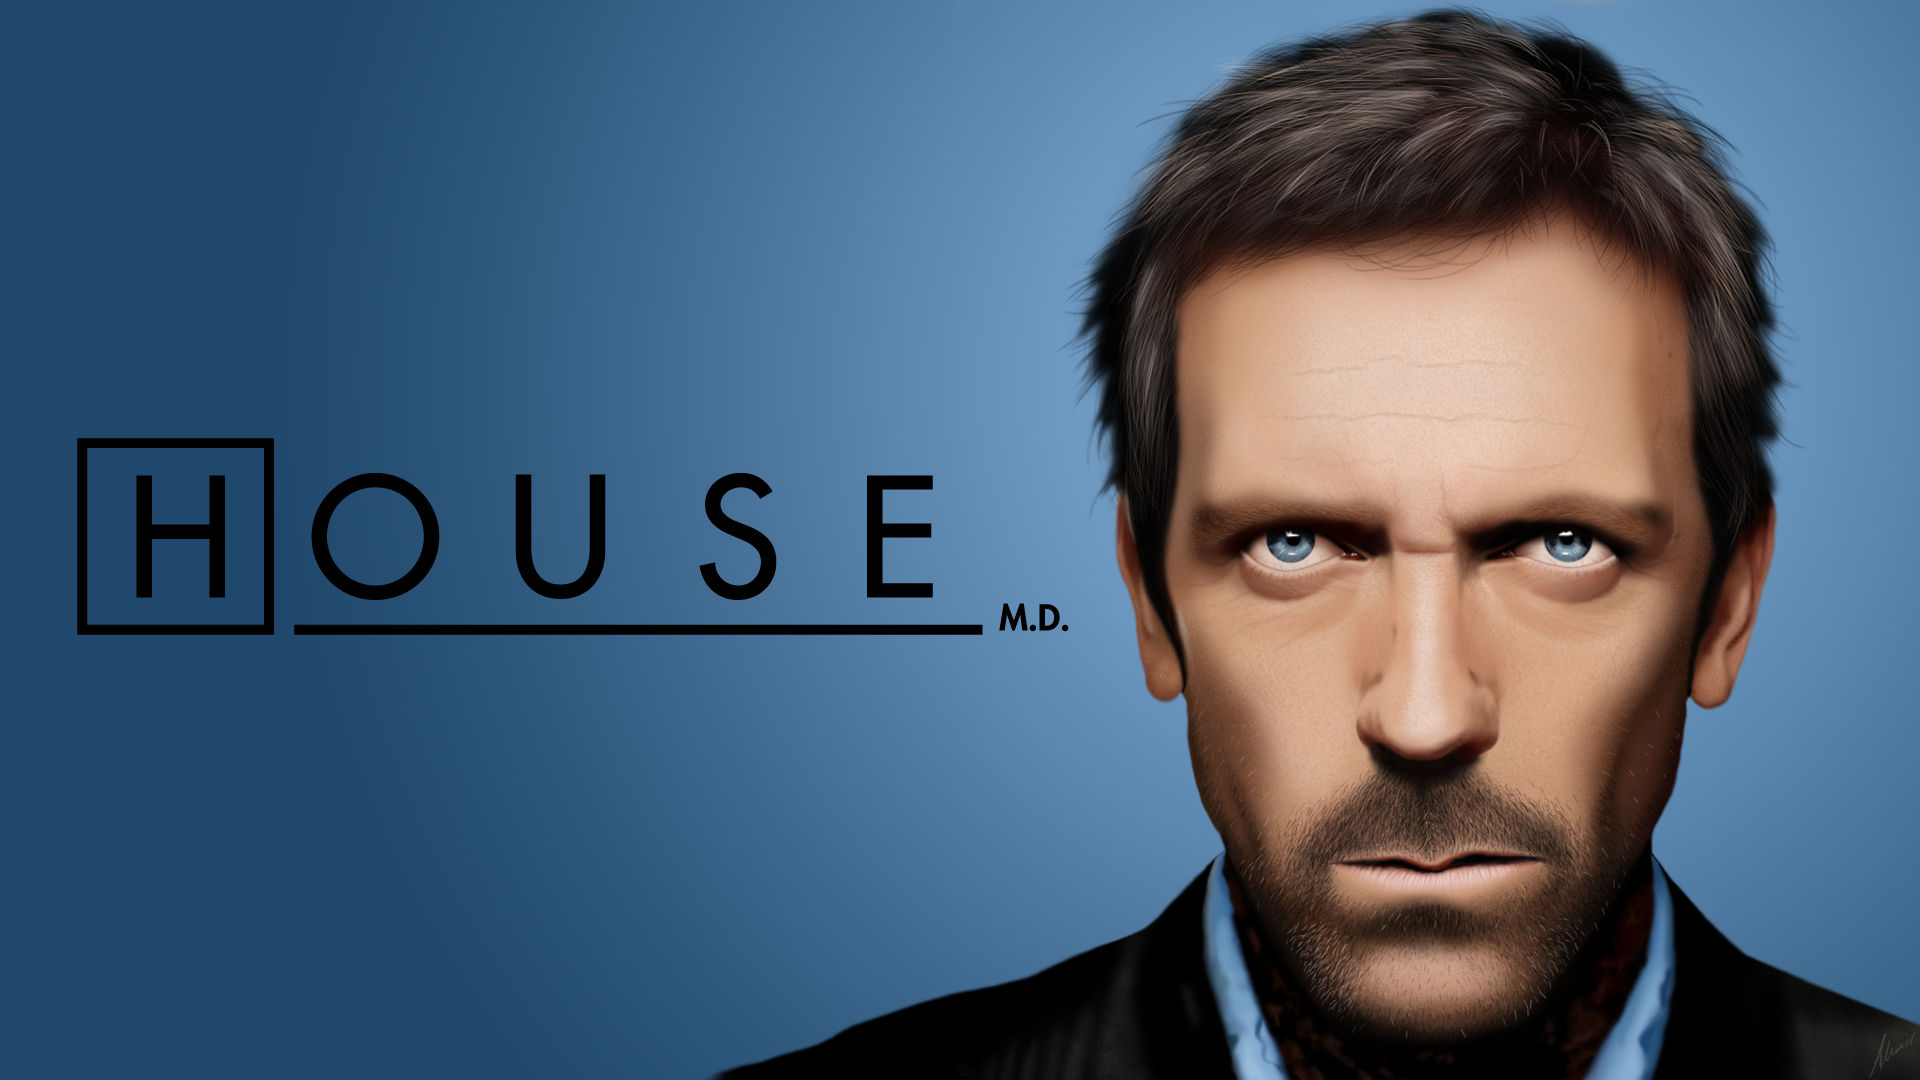 download wallpaper dr house - photo #22